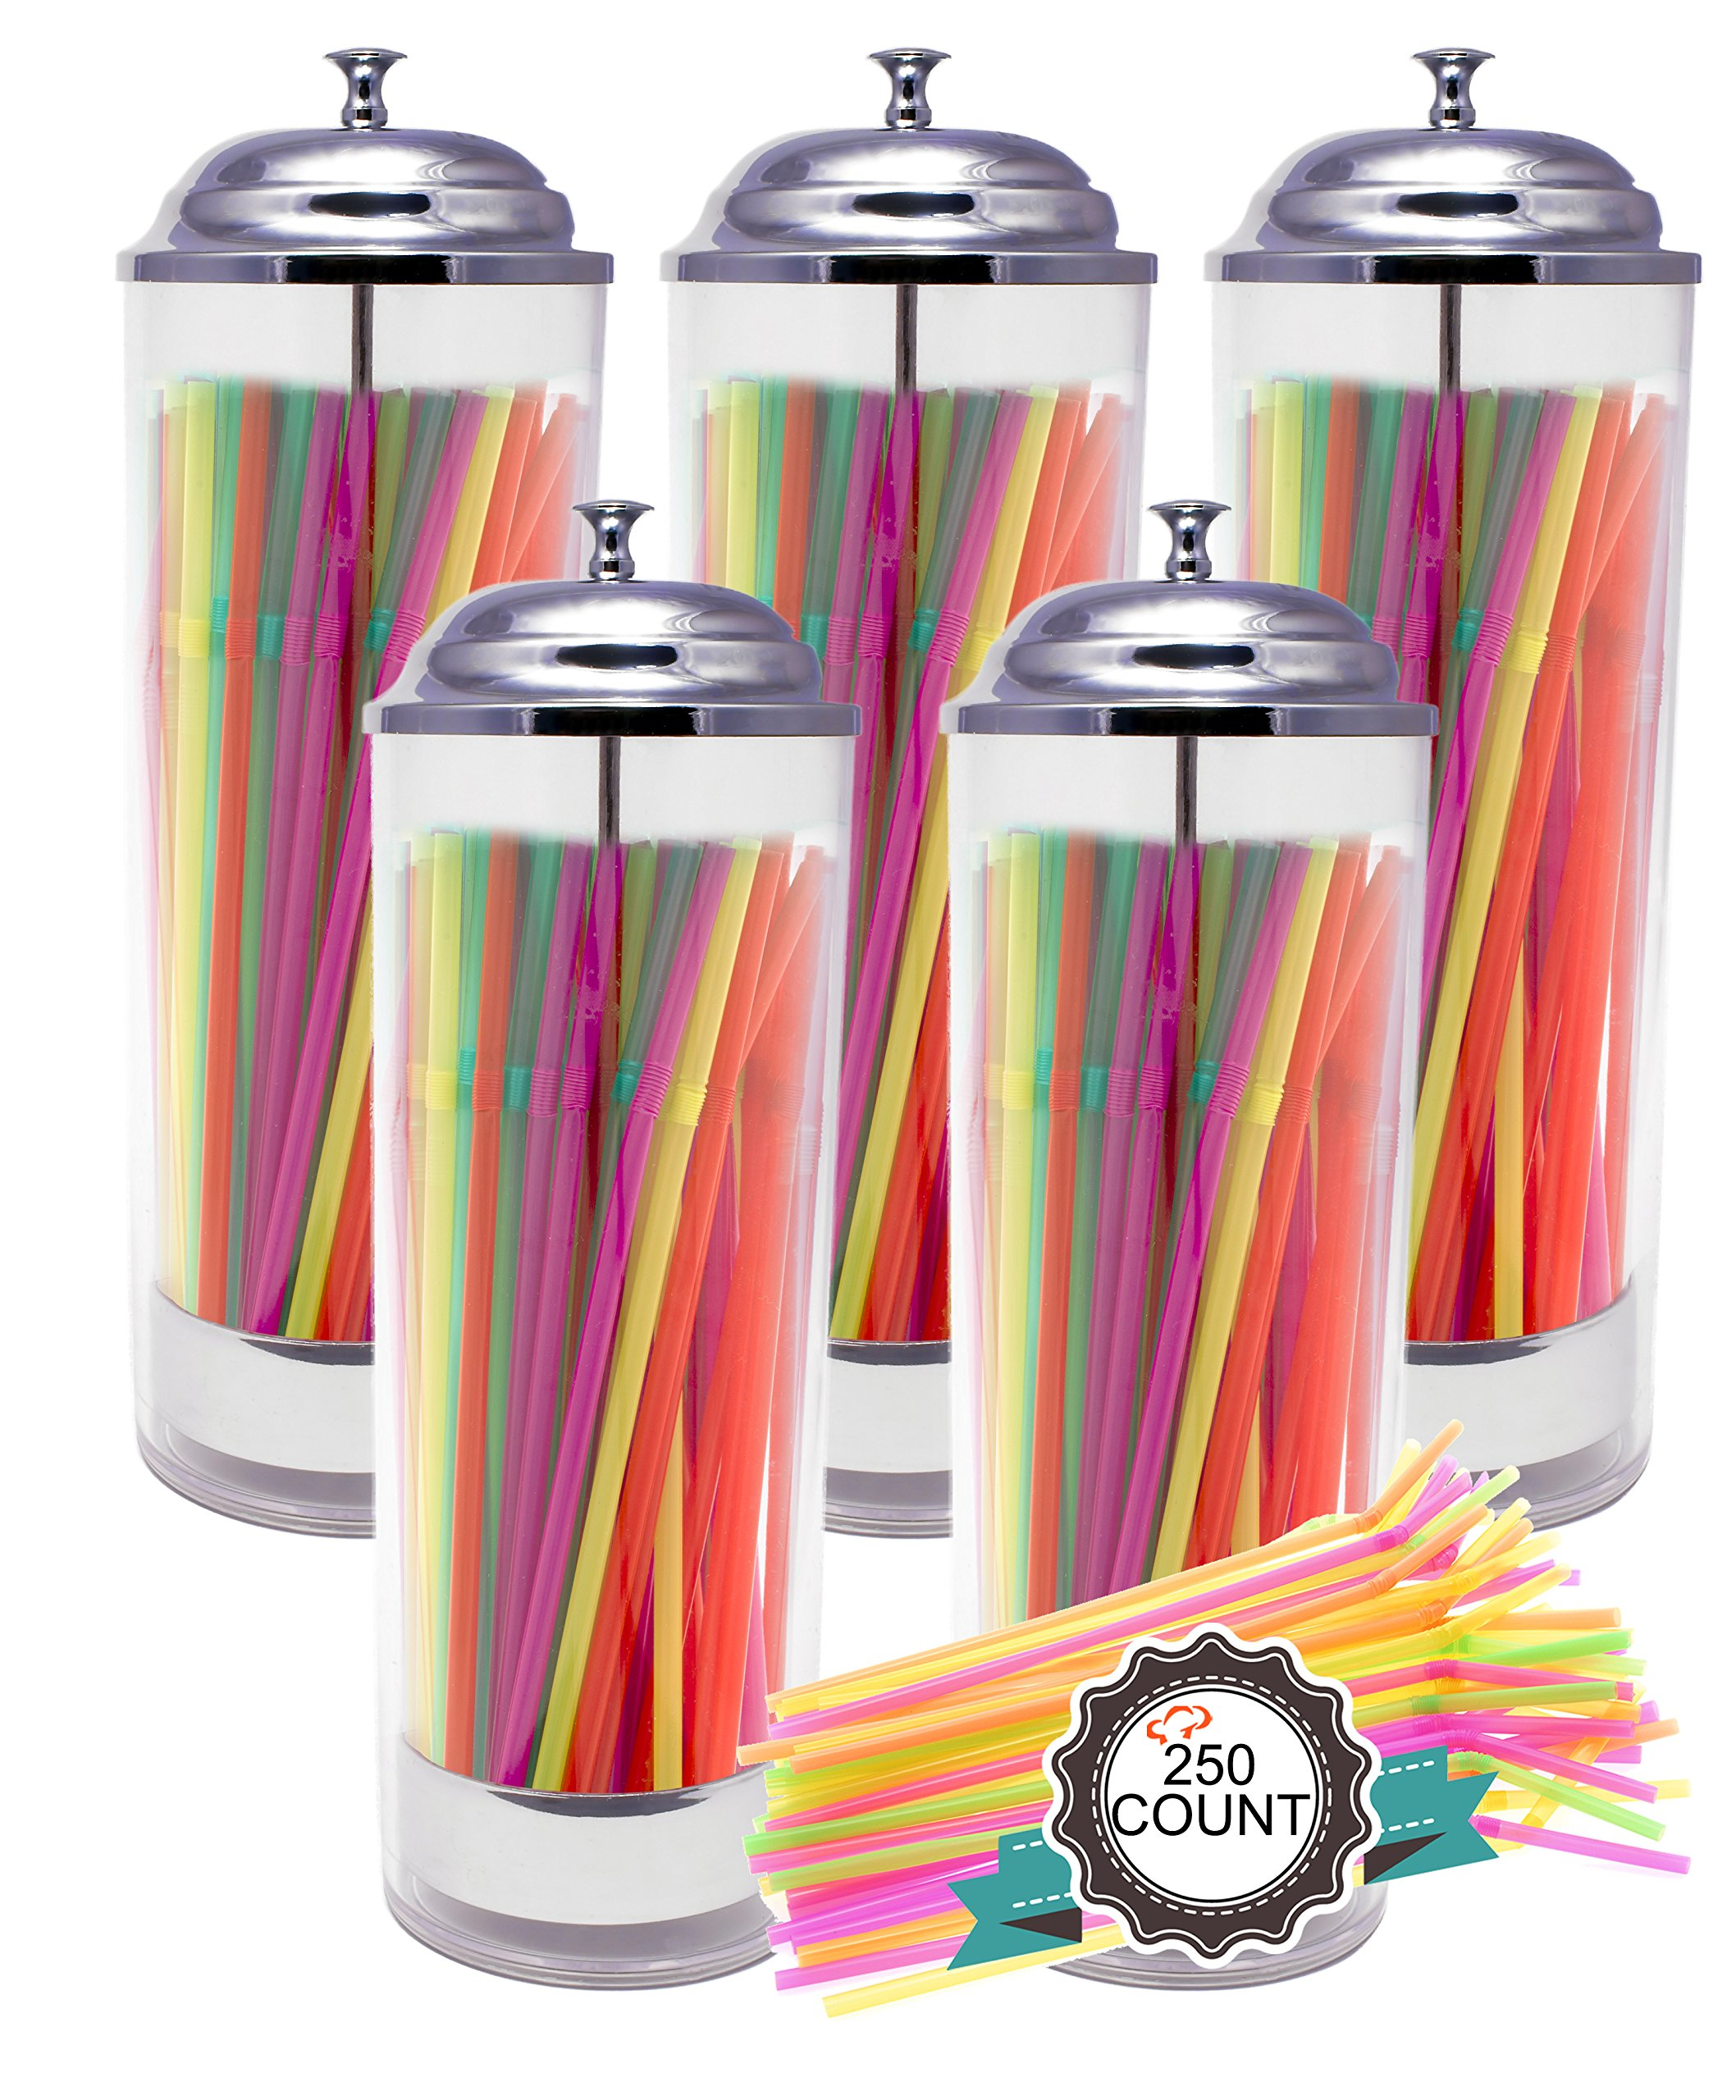 Tiger Chef 5-Pack Plastic Cylinder Straw Dispenser Holder with 50 Neon Straws, 3.5 x 10.6-Inch, Clear Plastic Pull-up Dispenser with Stainless Steel Lid and Tray by Tiger Chef